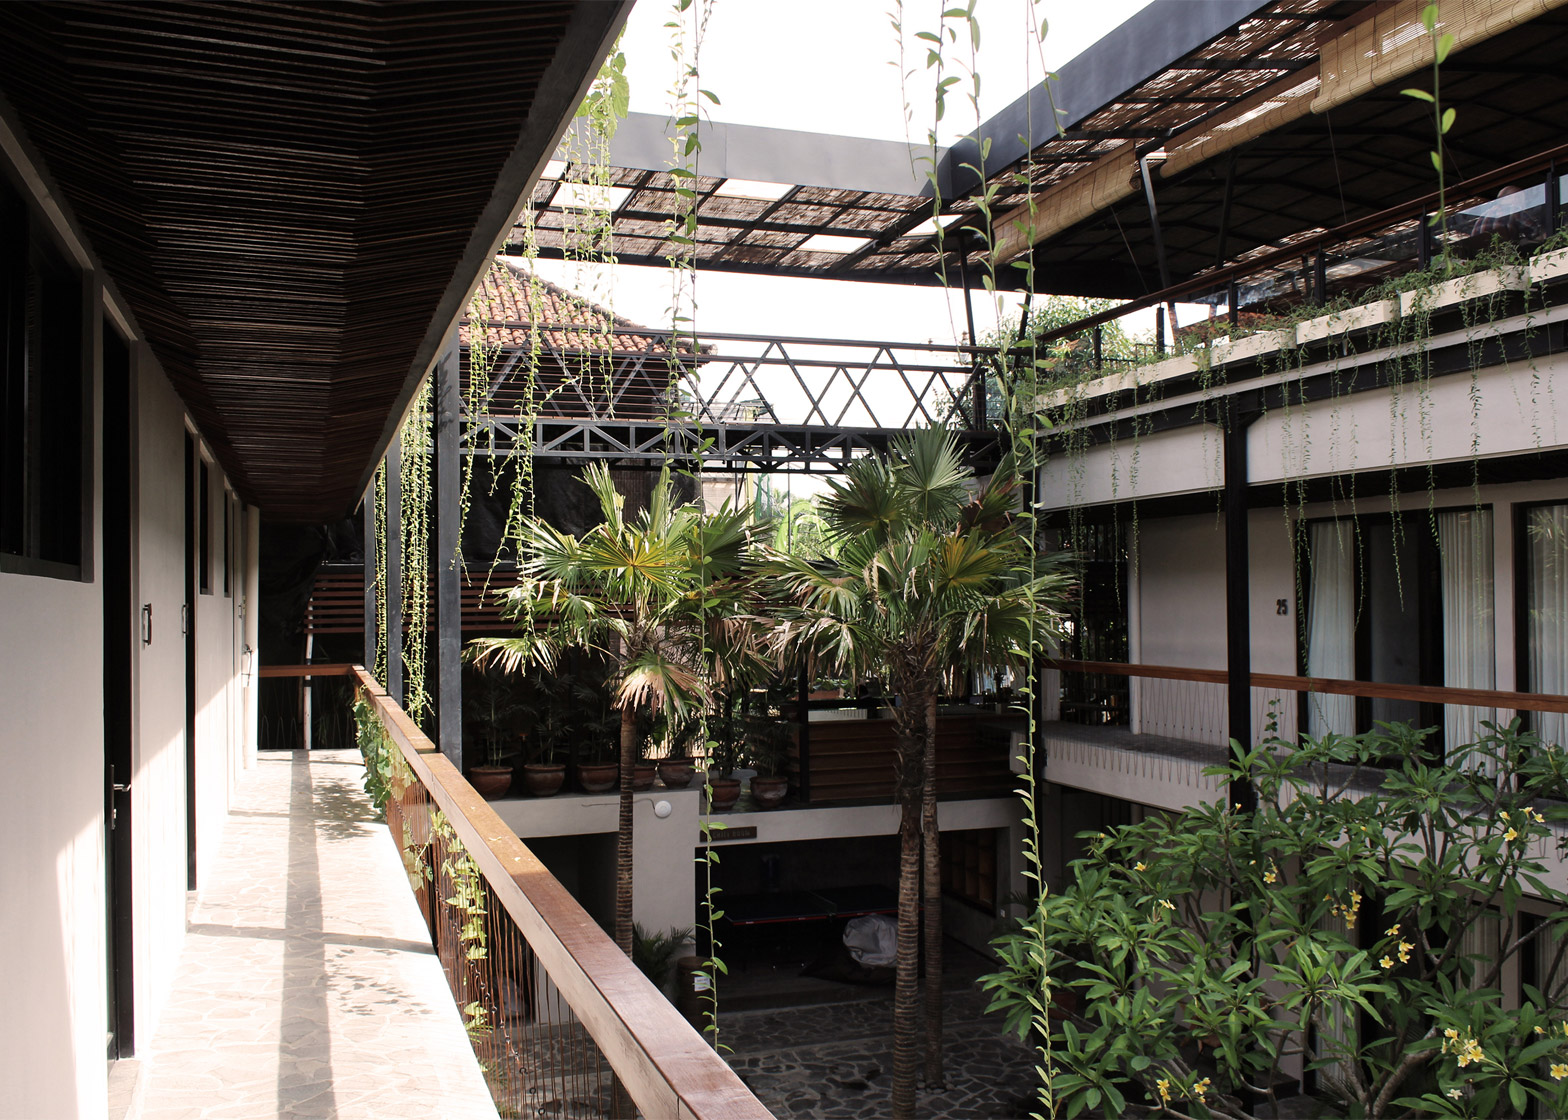 Roam Co-living Housing complex, Bali, by Alexis Dornier